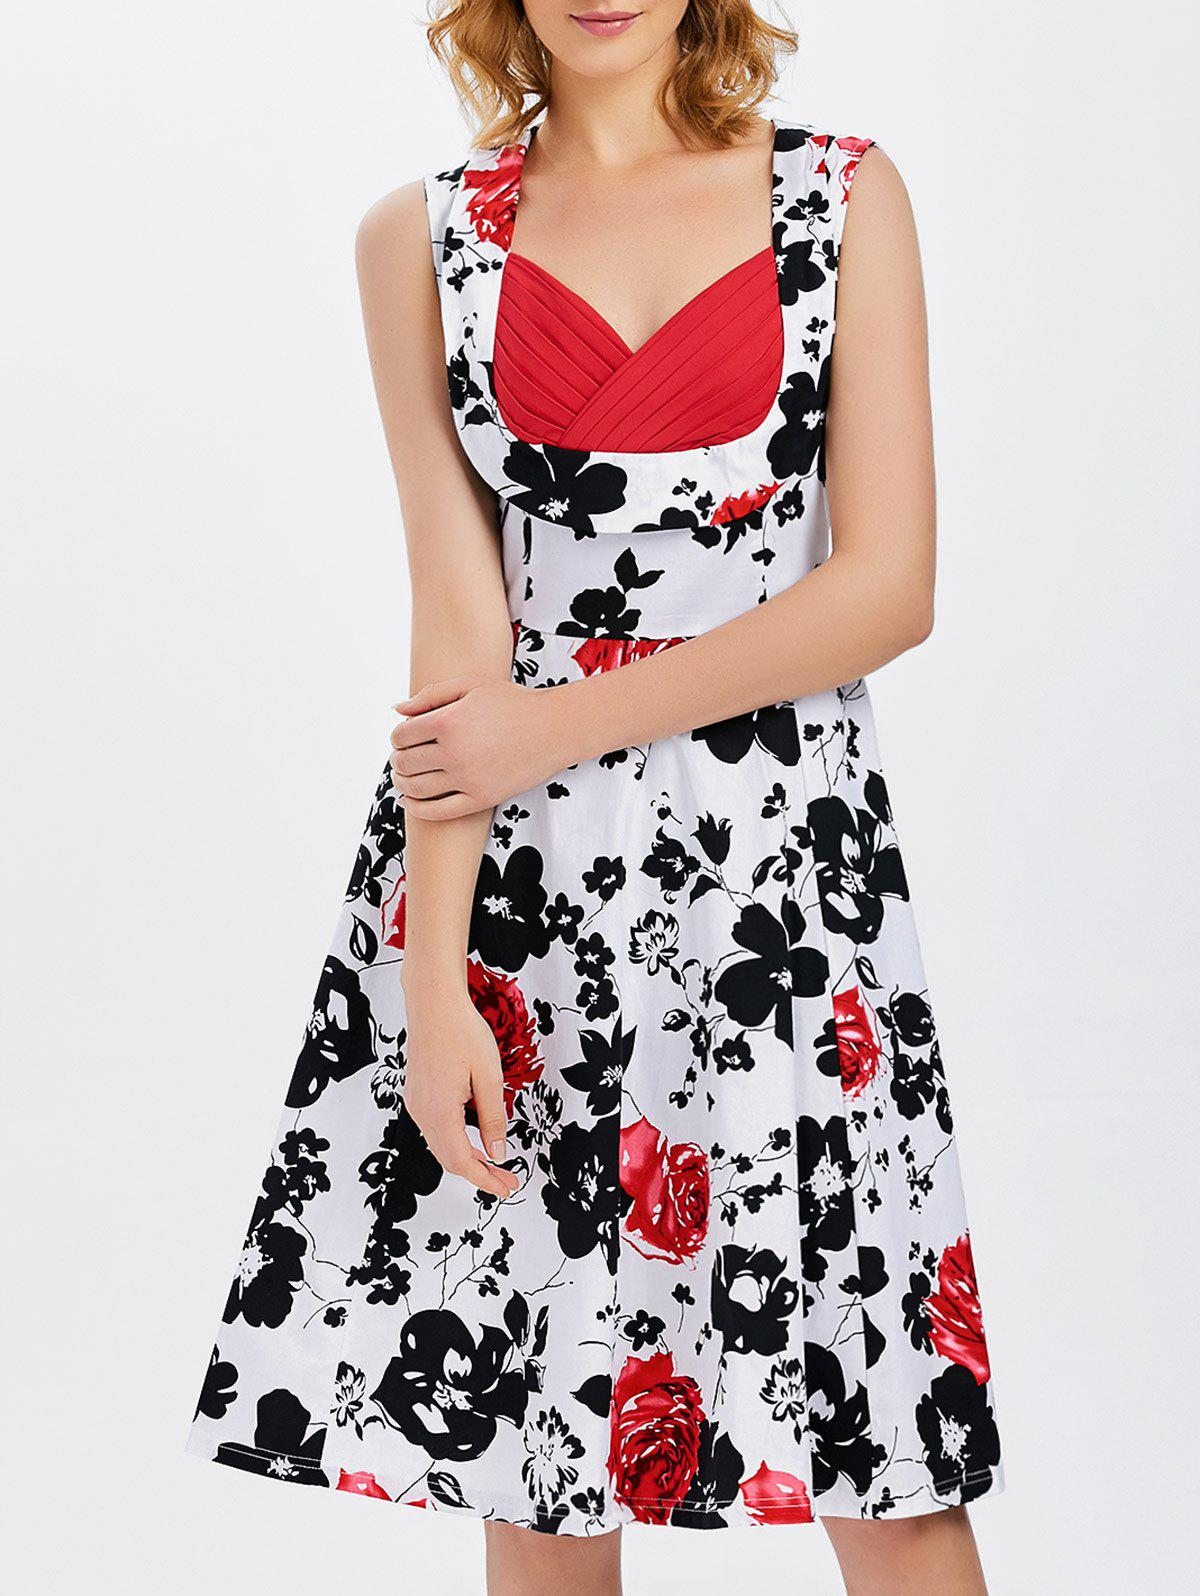 Vest Floral Printed Midi Swing Party Dress music note party swing dress